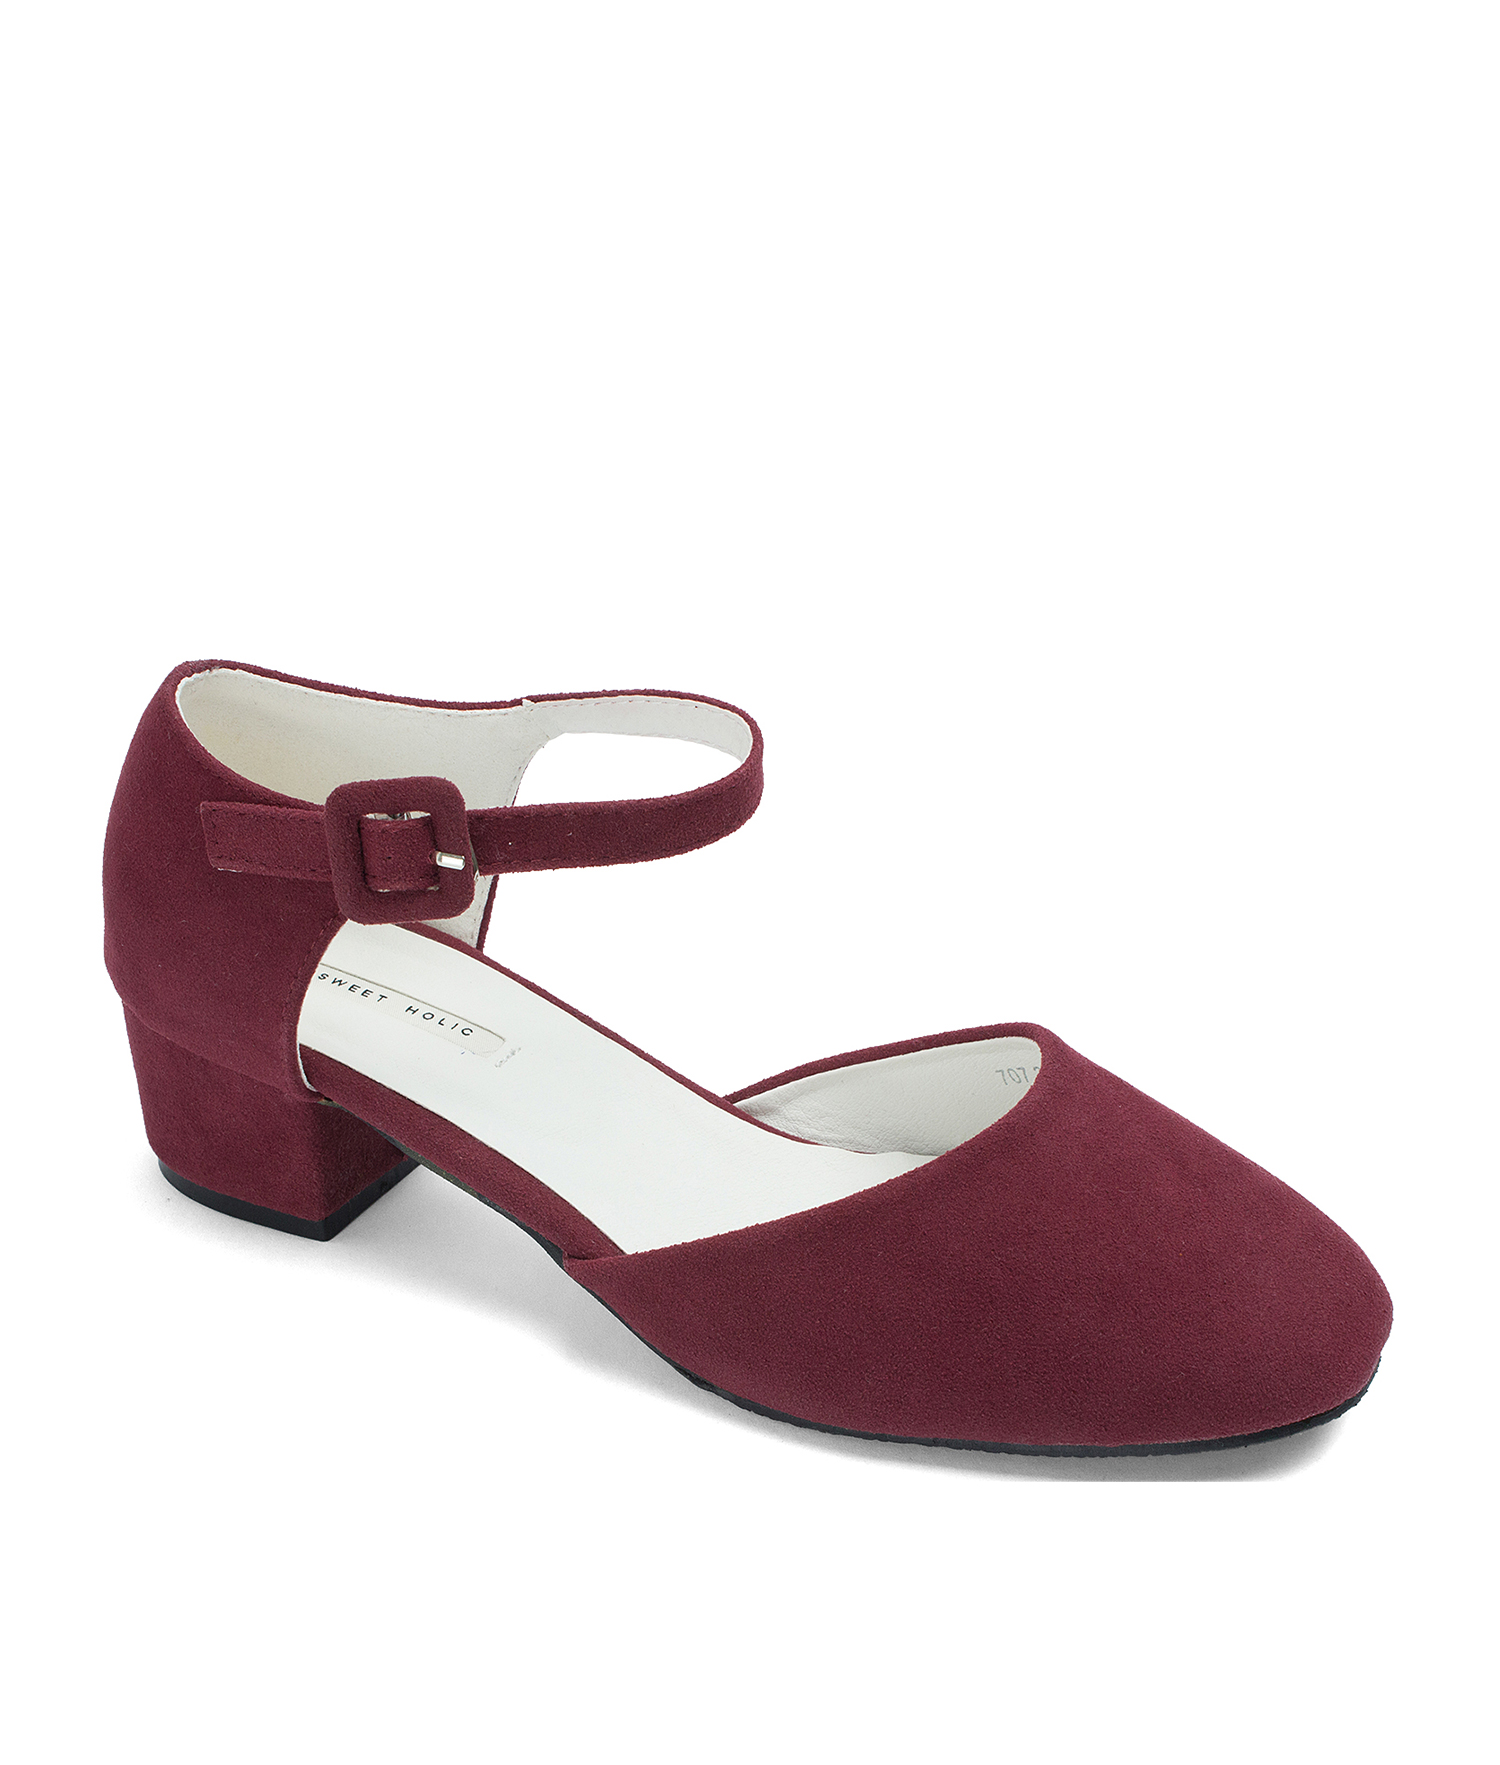 6ca9c2aee Faux Suede d'Orsay Ankle Wrap Pumps - annakastleshoes.com